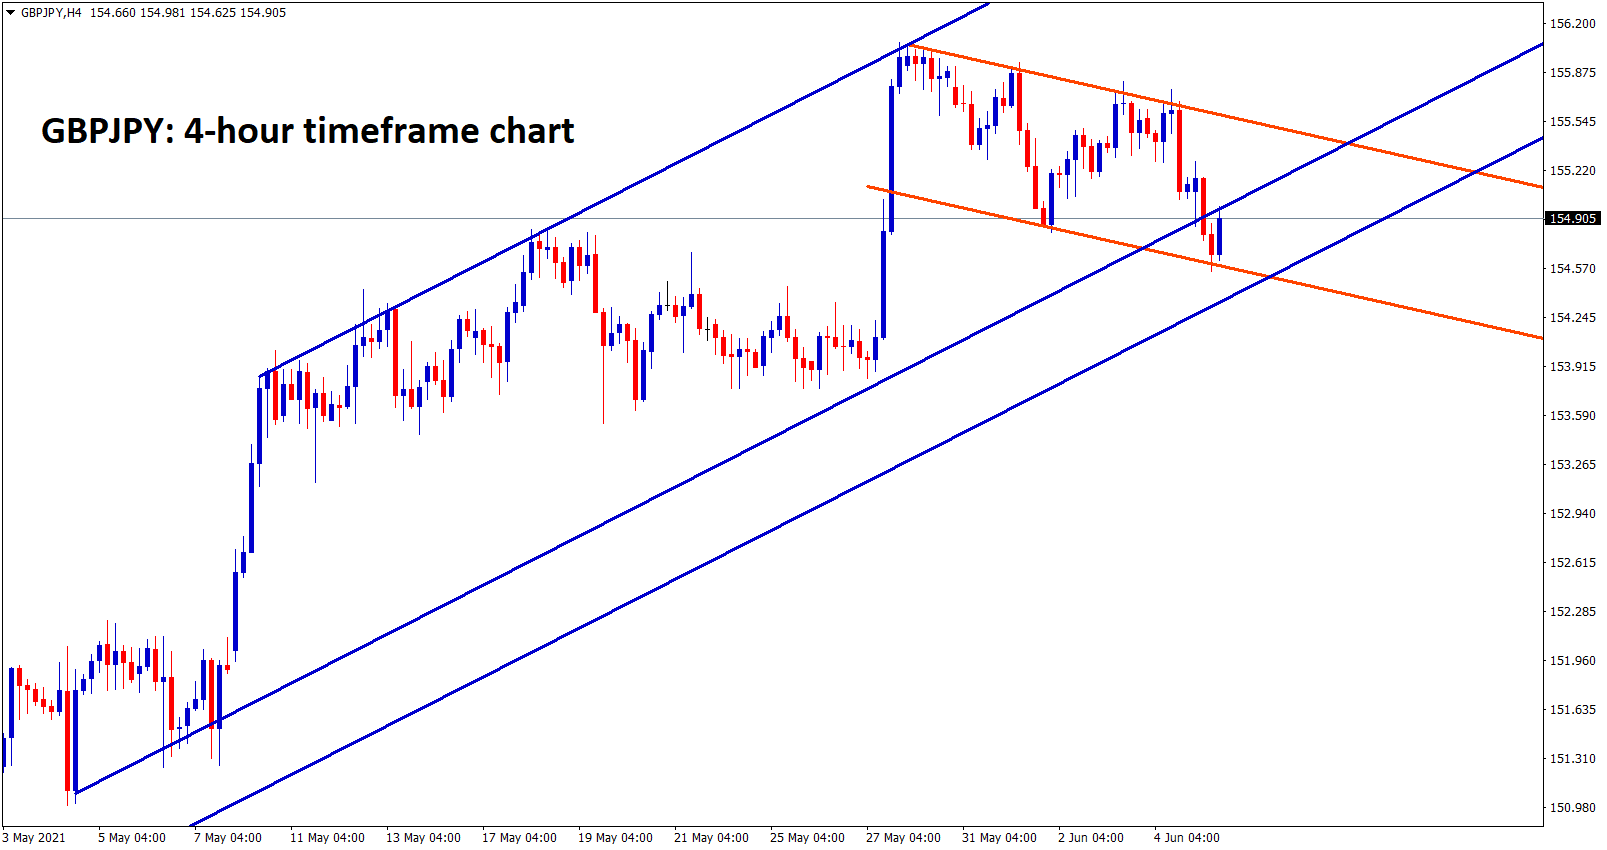 GBPJPY forming a flag pattern in uptrend